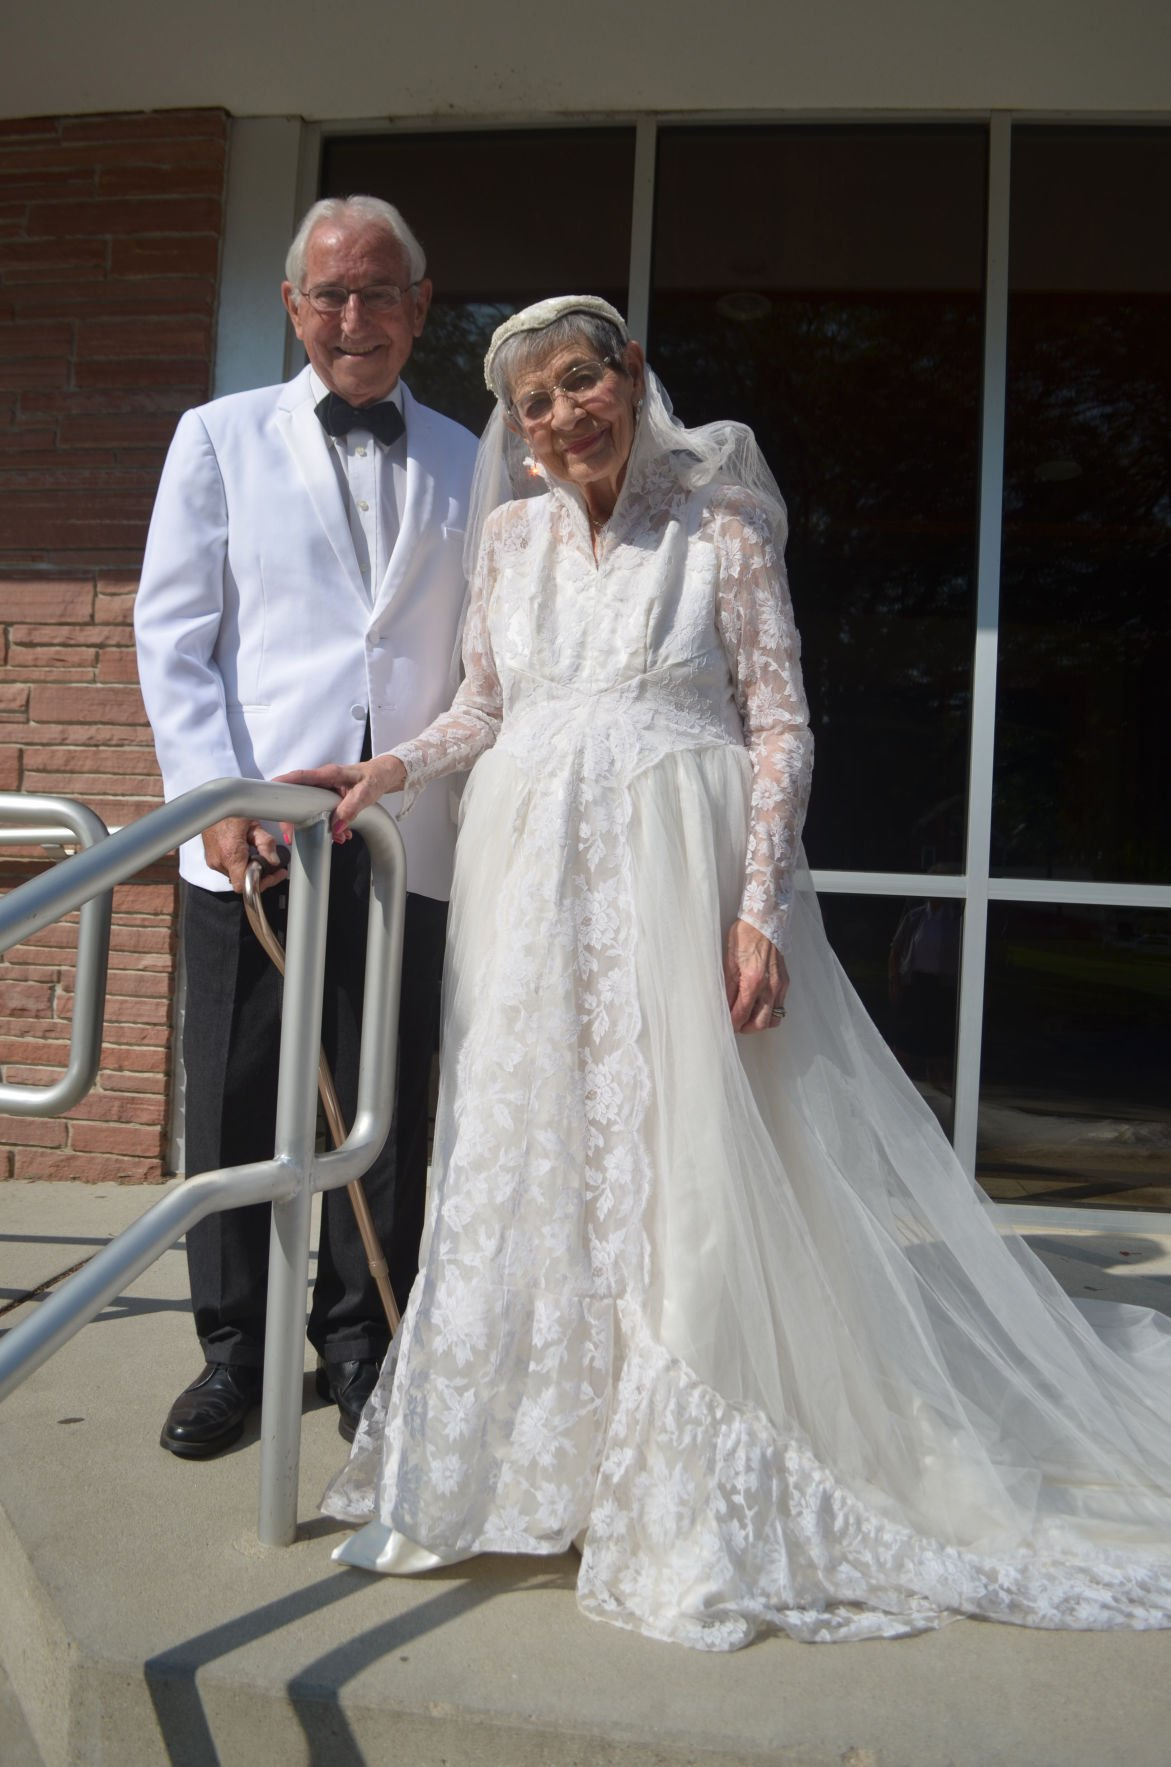 Bride wears wedding gown to 65th anniversary celebration | Local ...